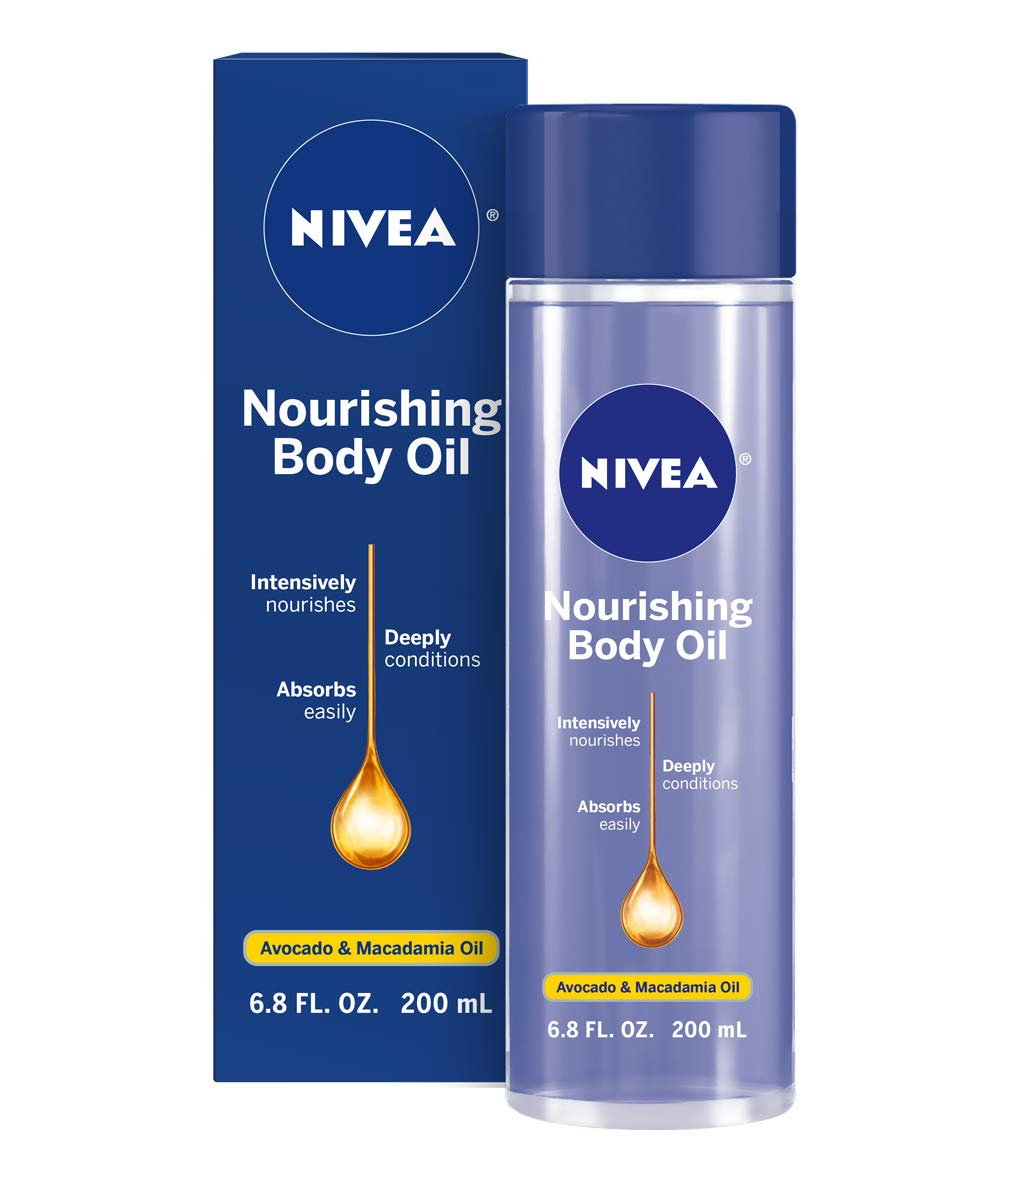 NIVEA Nourishing Body Oil 6.8 fl oz